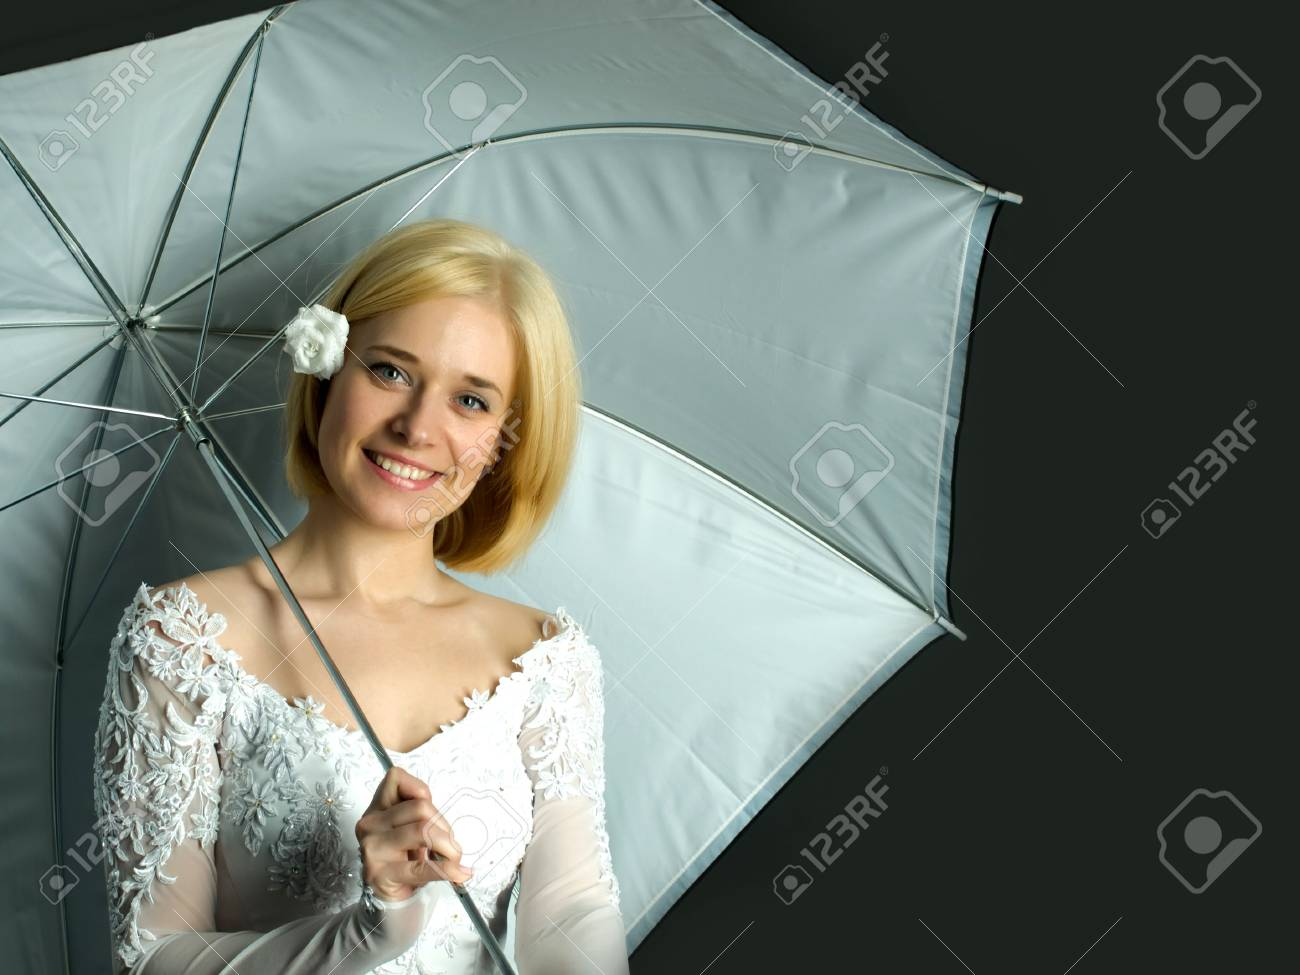 Portrait of young woman on black background with umbrella Stock Photo - 4637390